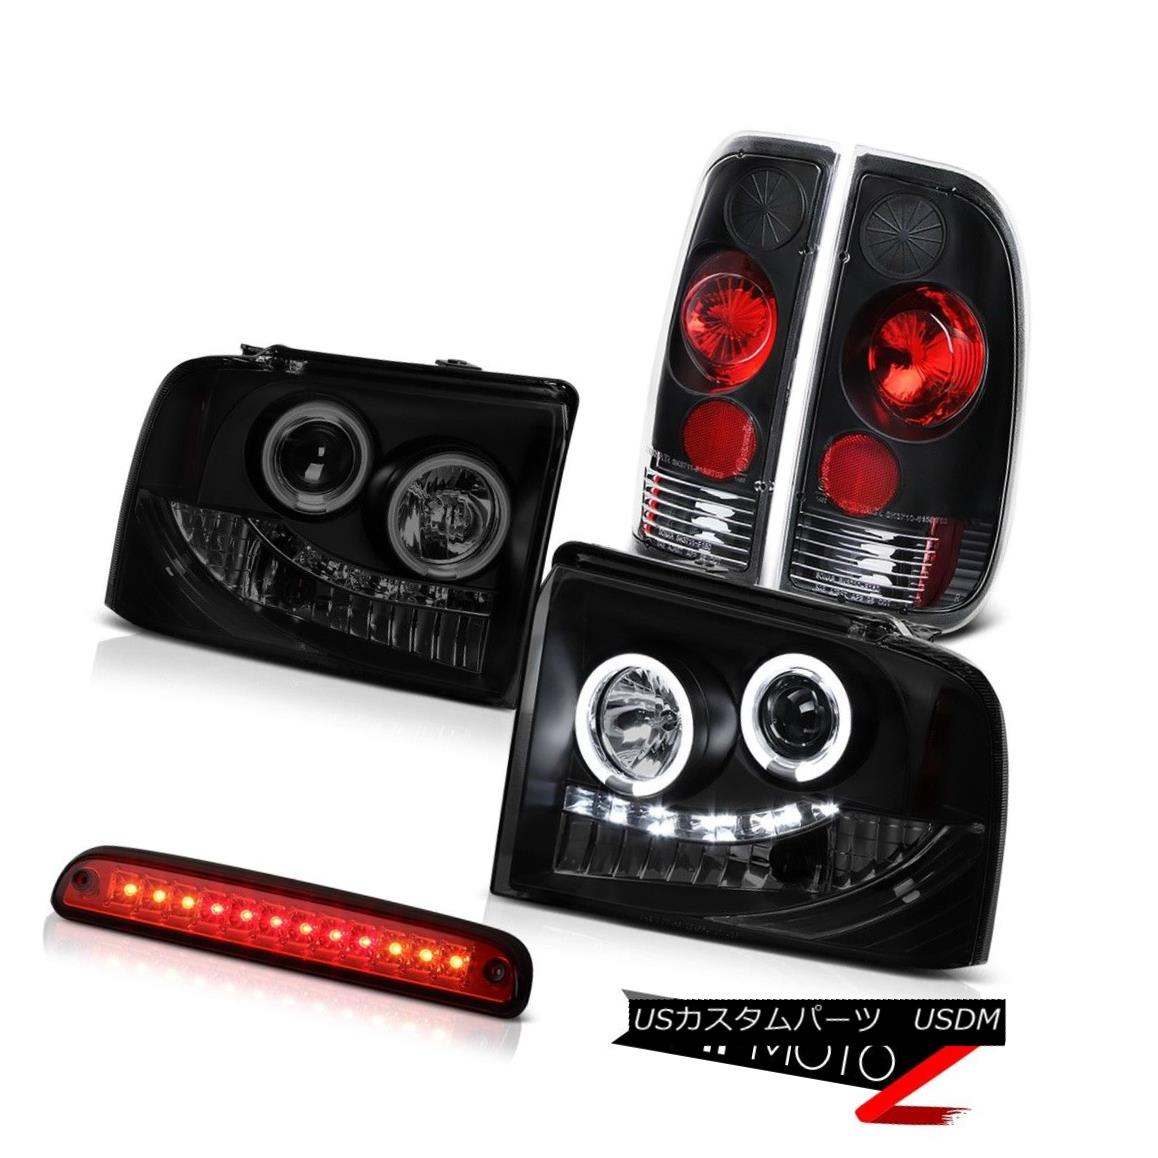 テールライト Brightest CCFL Halo Headlights Tail Brake Lights Roof LED 05-07 F250 TurboDiesel 最も明るいCCFLハローヘッドライトテールブレーキライトルーフLED 05-07 F250 TurboDiesel